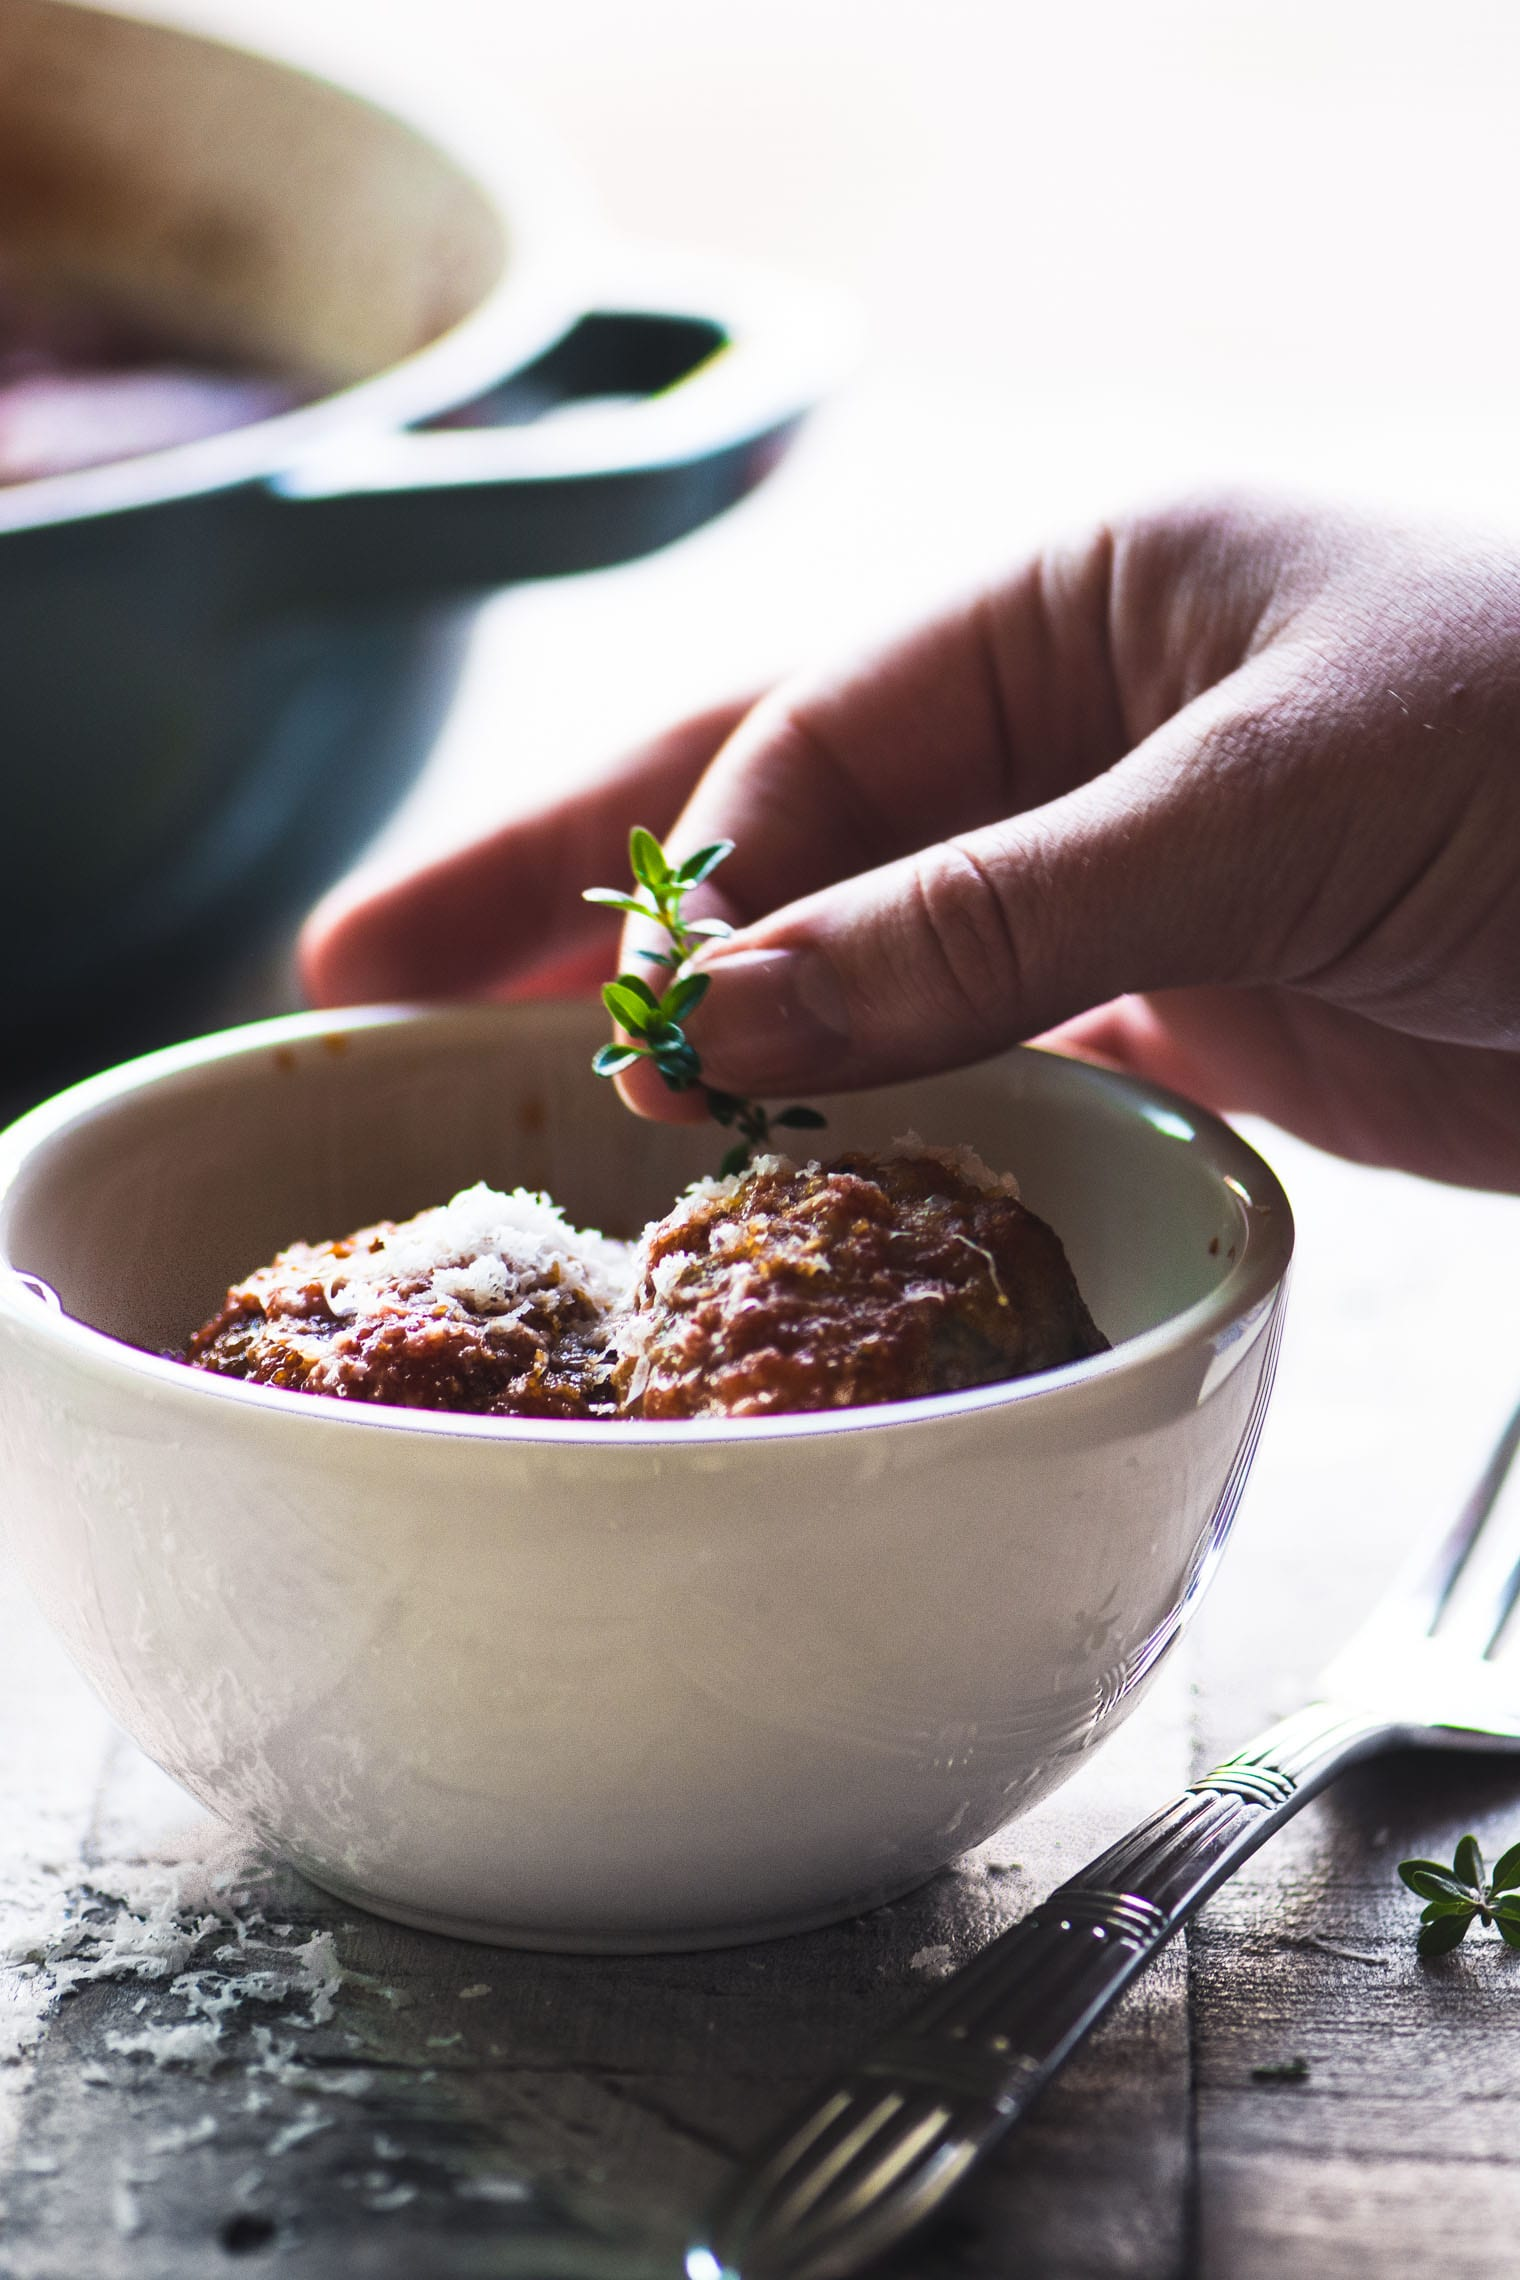 Meatballs al forno, garnished with thyme sprig